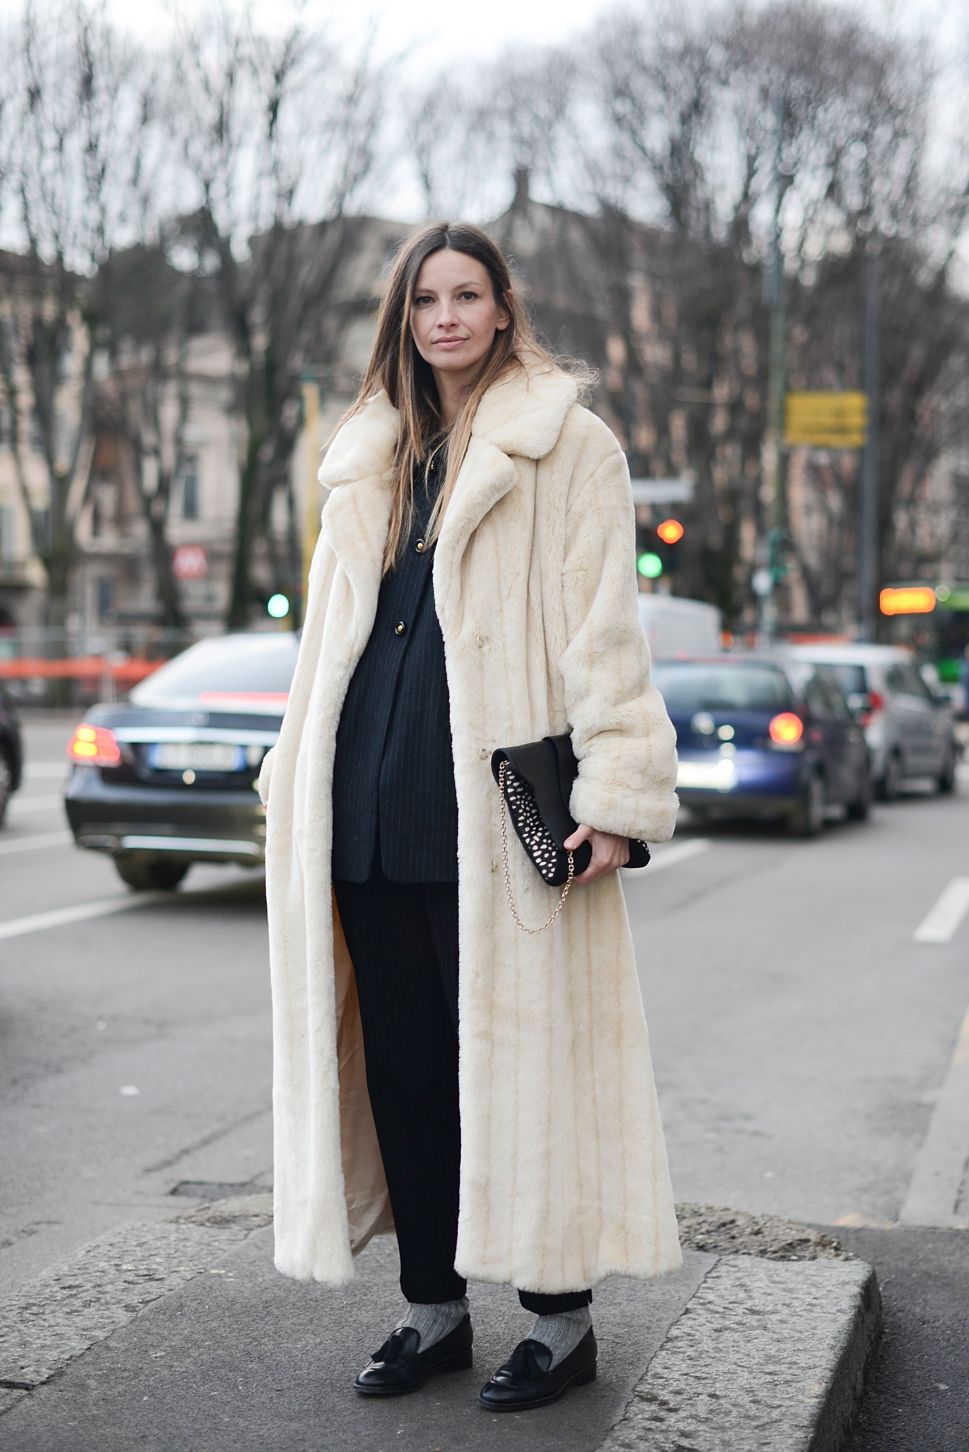 The Dramatic Allure of a Really Long Coat